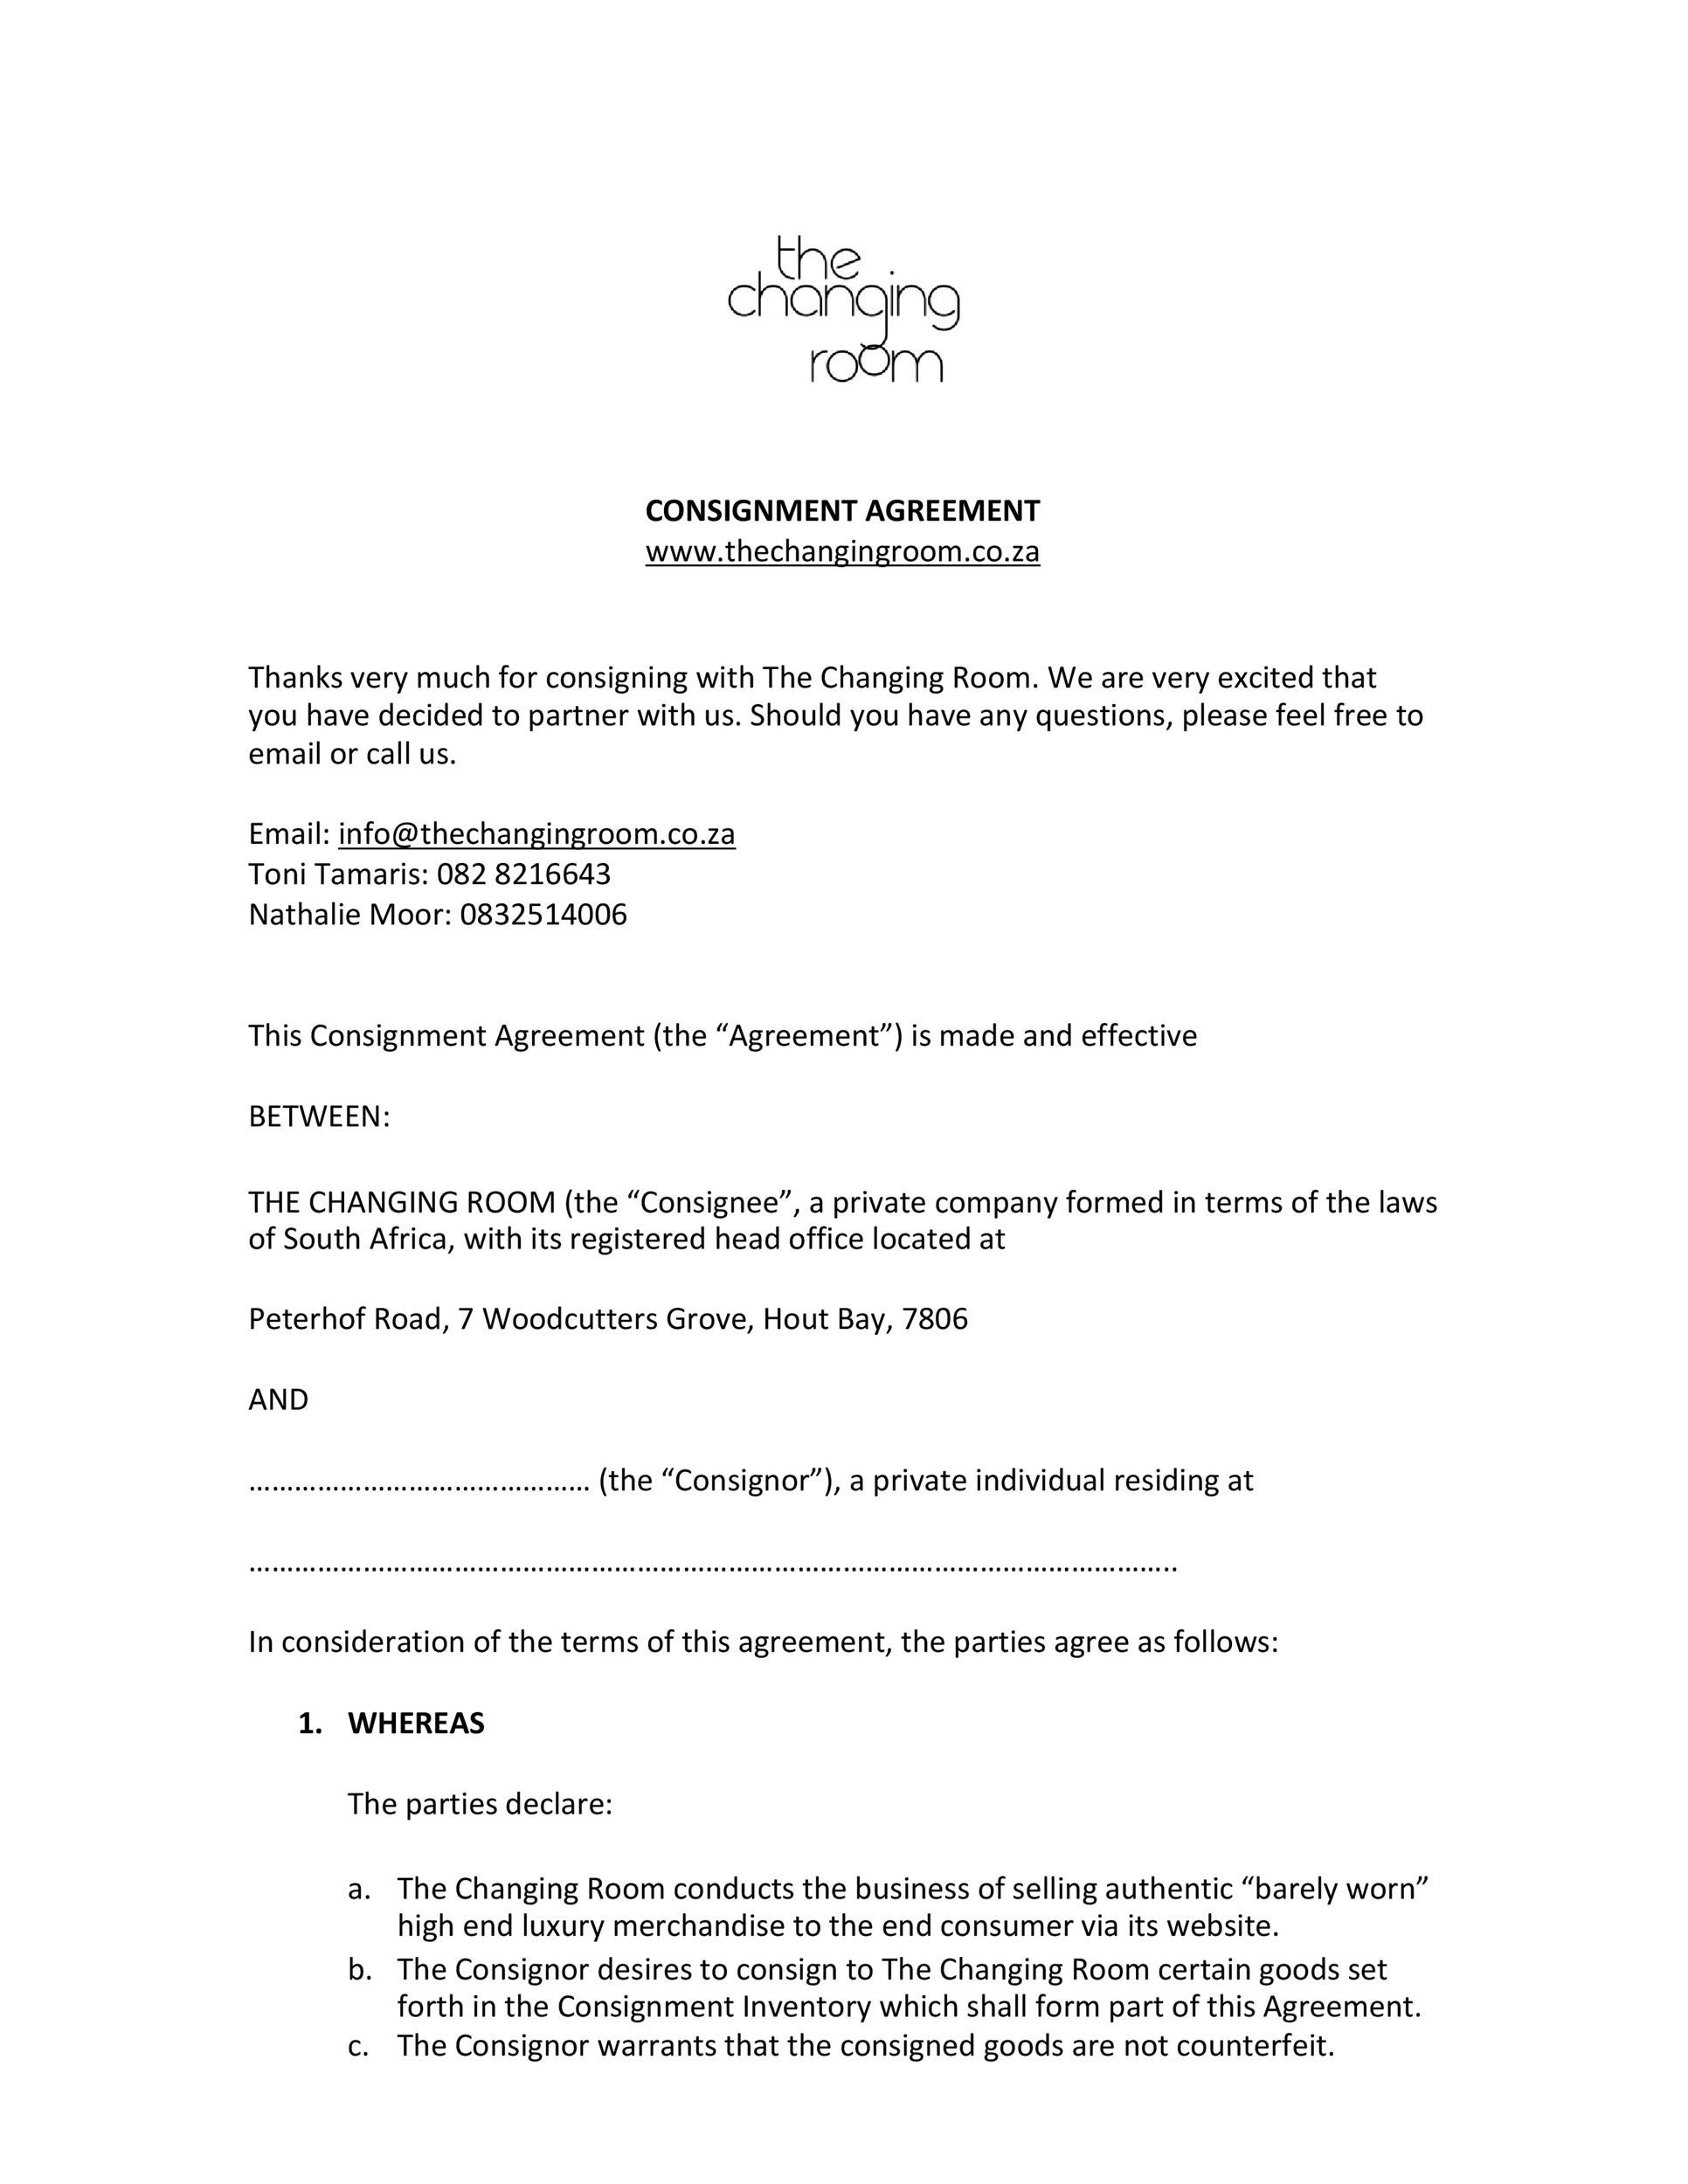 Free Consignment Agreement Template 17